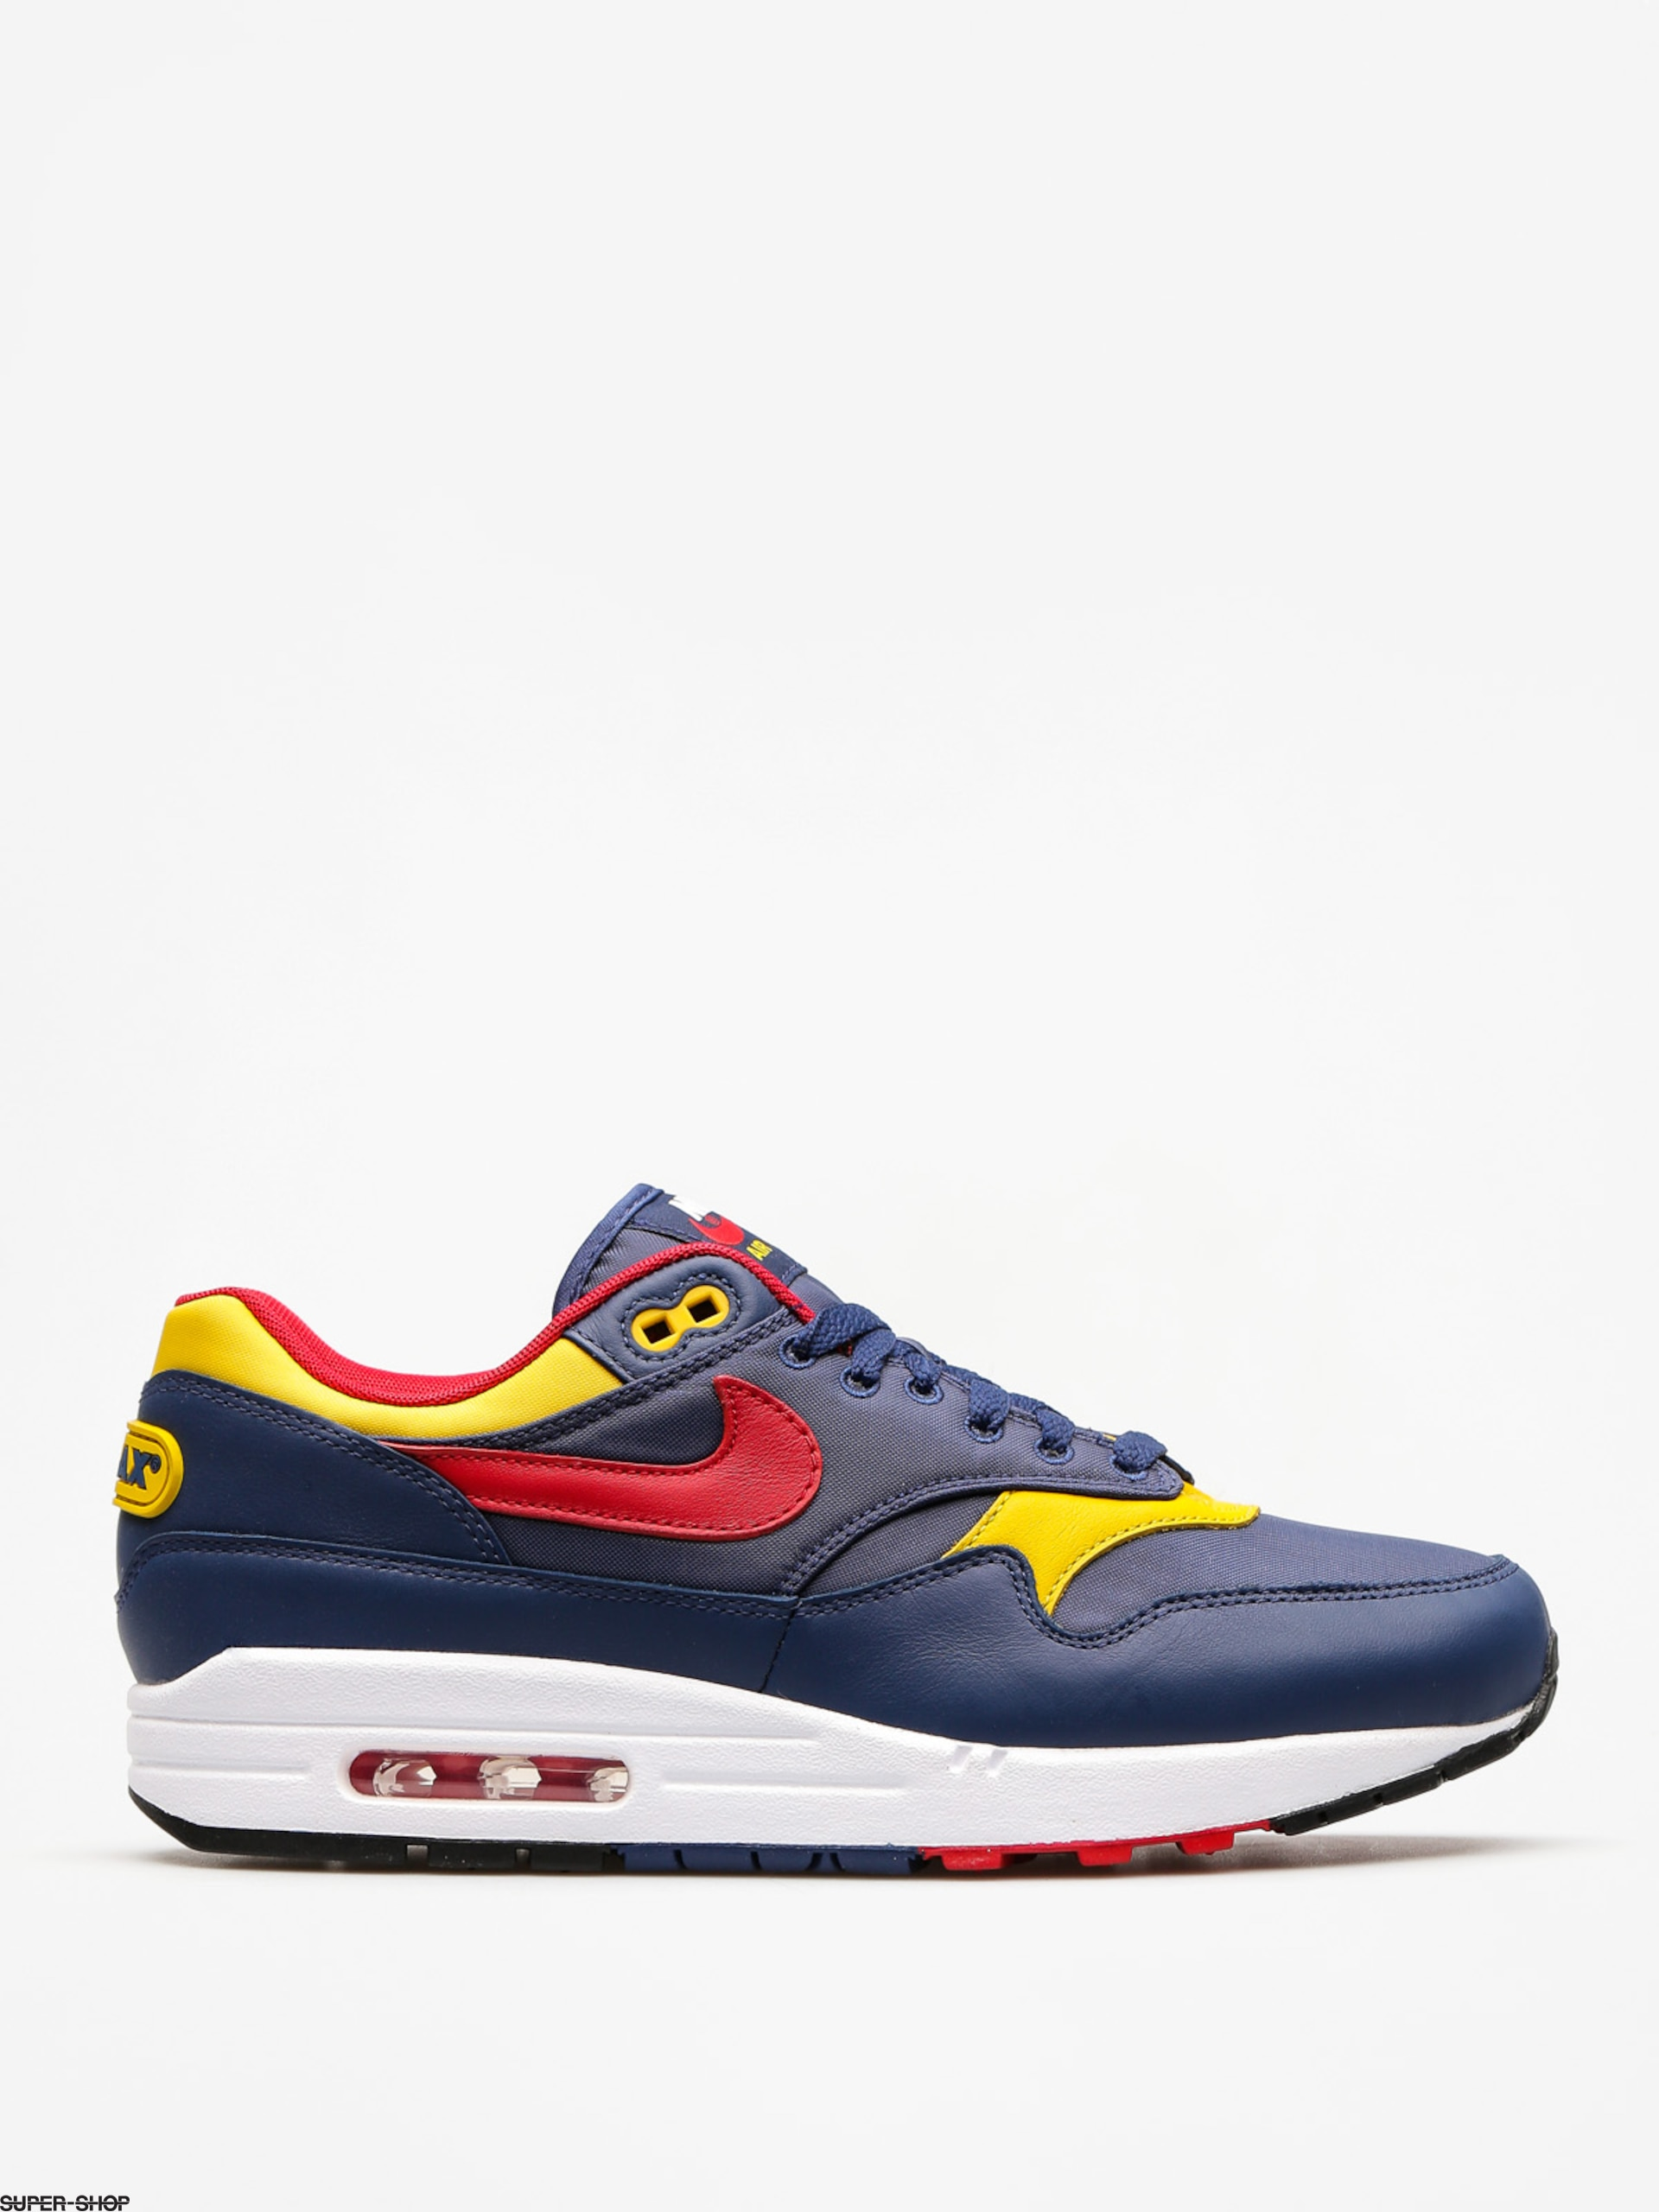 Nike Shoes Air Max 1 Premium (navy/gym red vivid sulfur white)